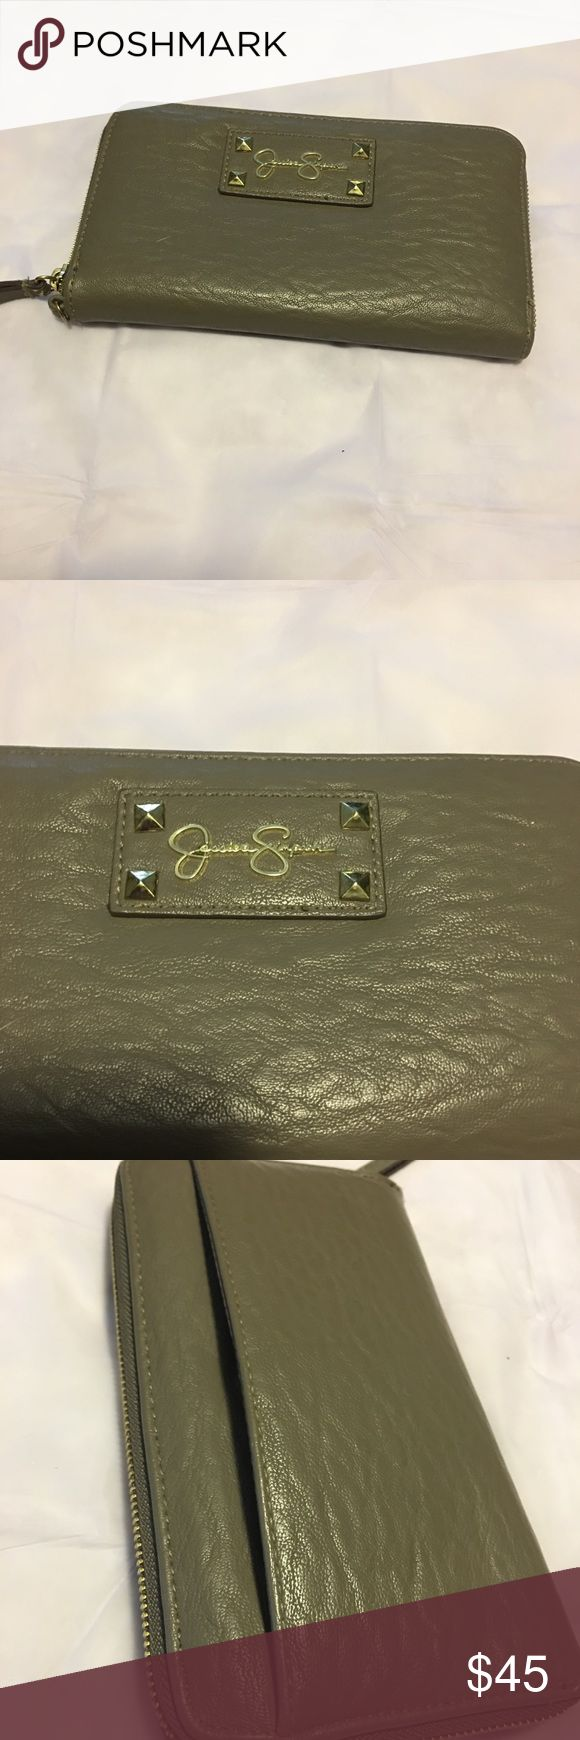 Jessica Simpson wallet Jessica Simpson wallet in good condition lots of pockets Jessica Simpson Bags Wallets